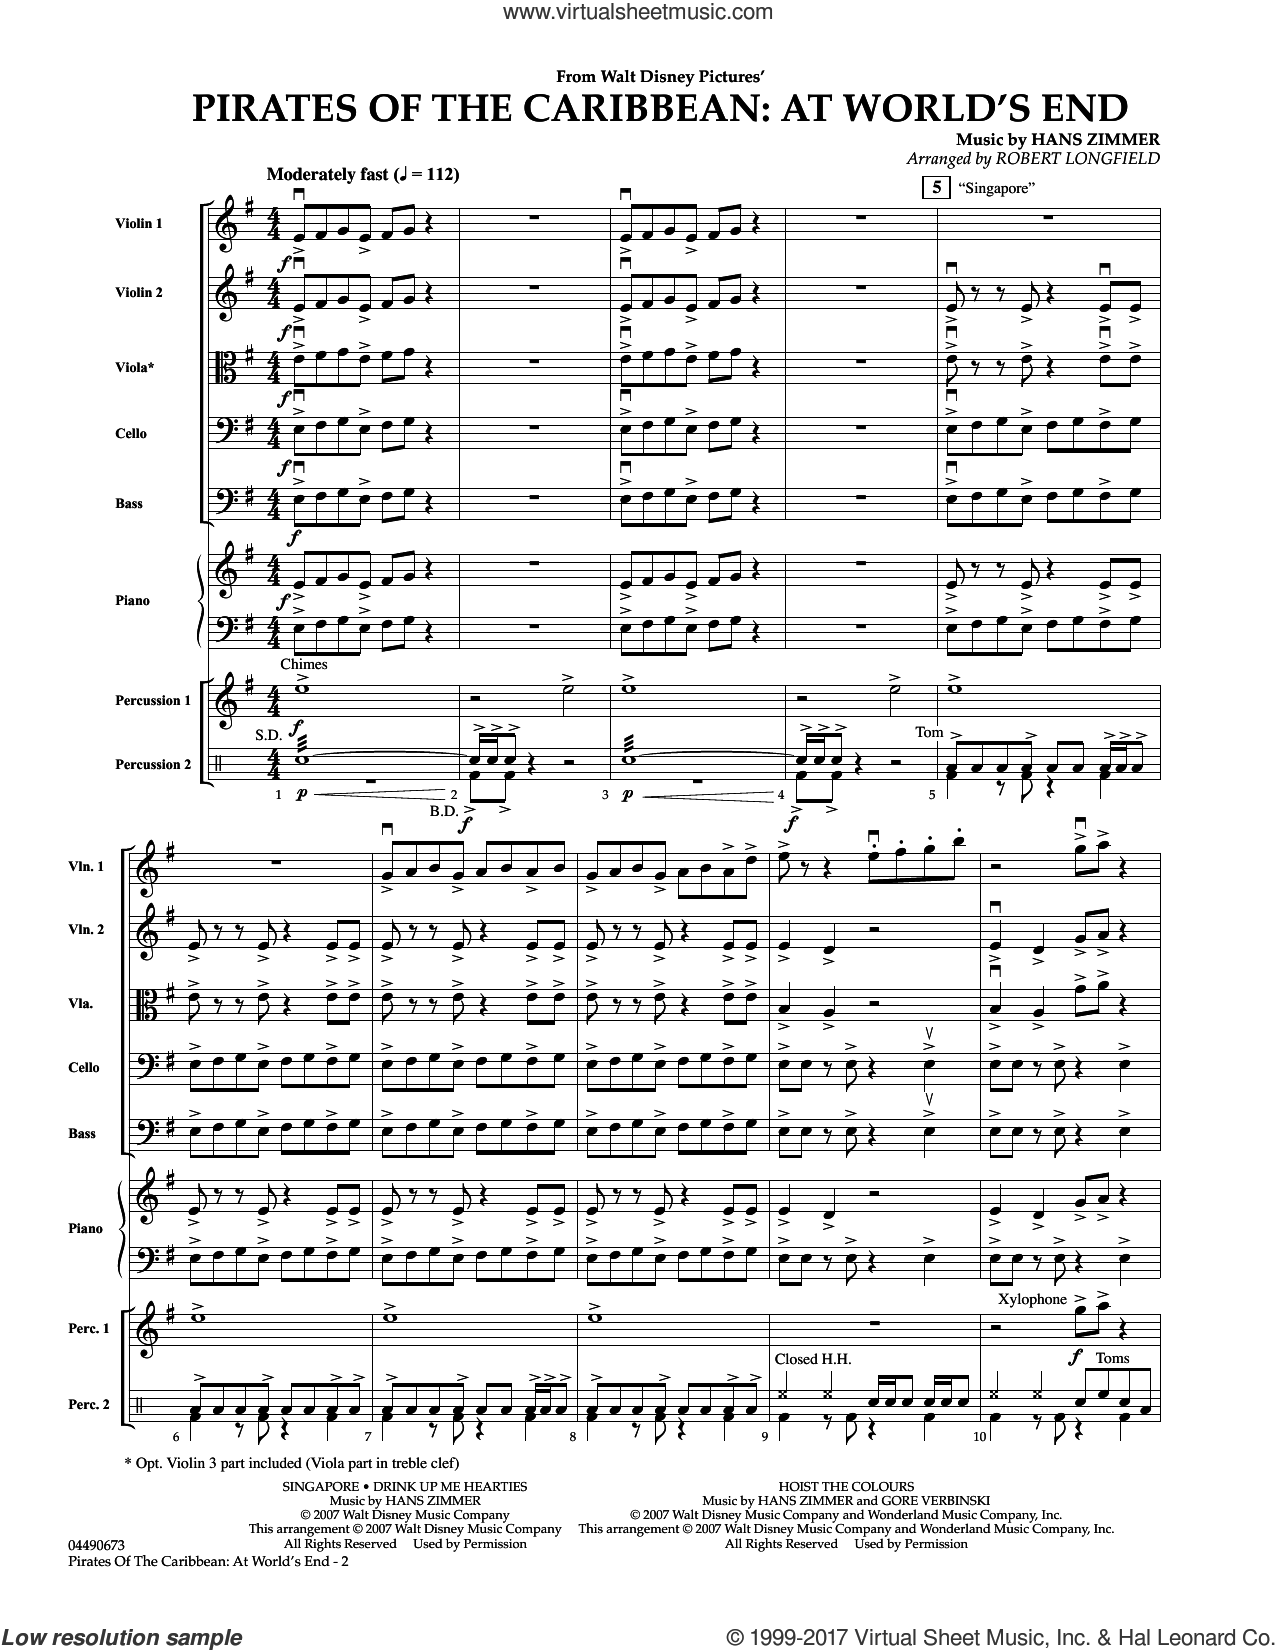 Pirates of the Caribbean: At World's End (COMPLETE) sheet music for orchestra by Robert Longfield and Hans Zimmer, intermediate skill level